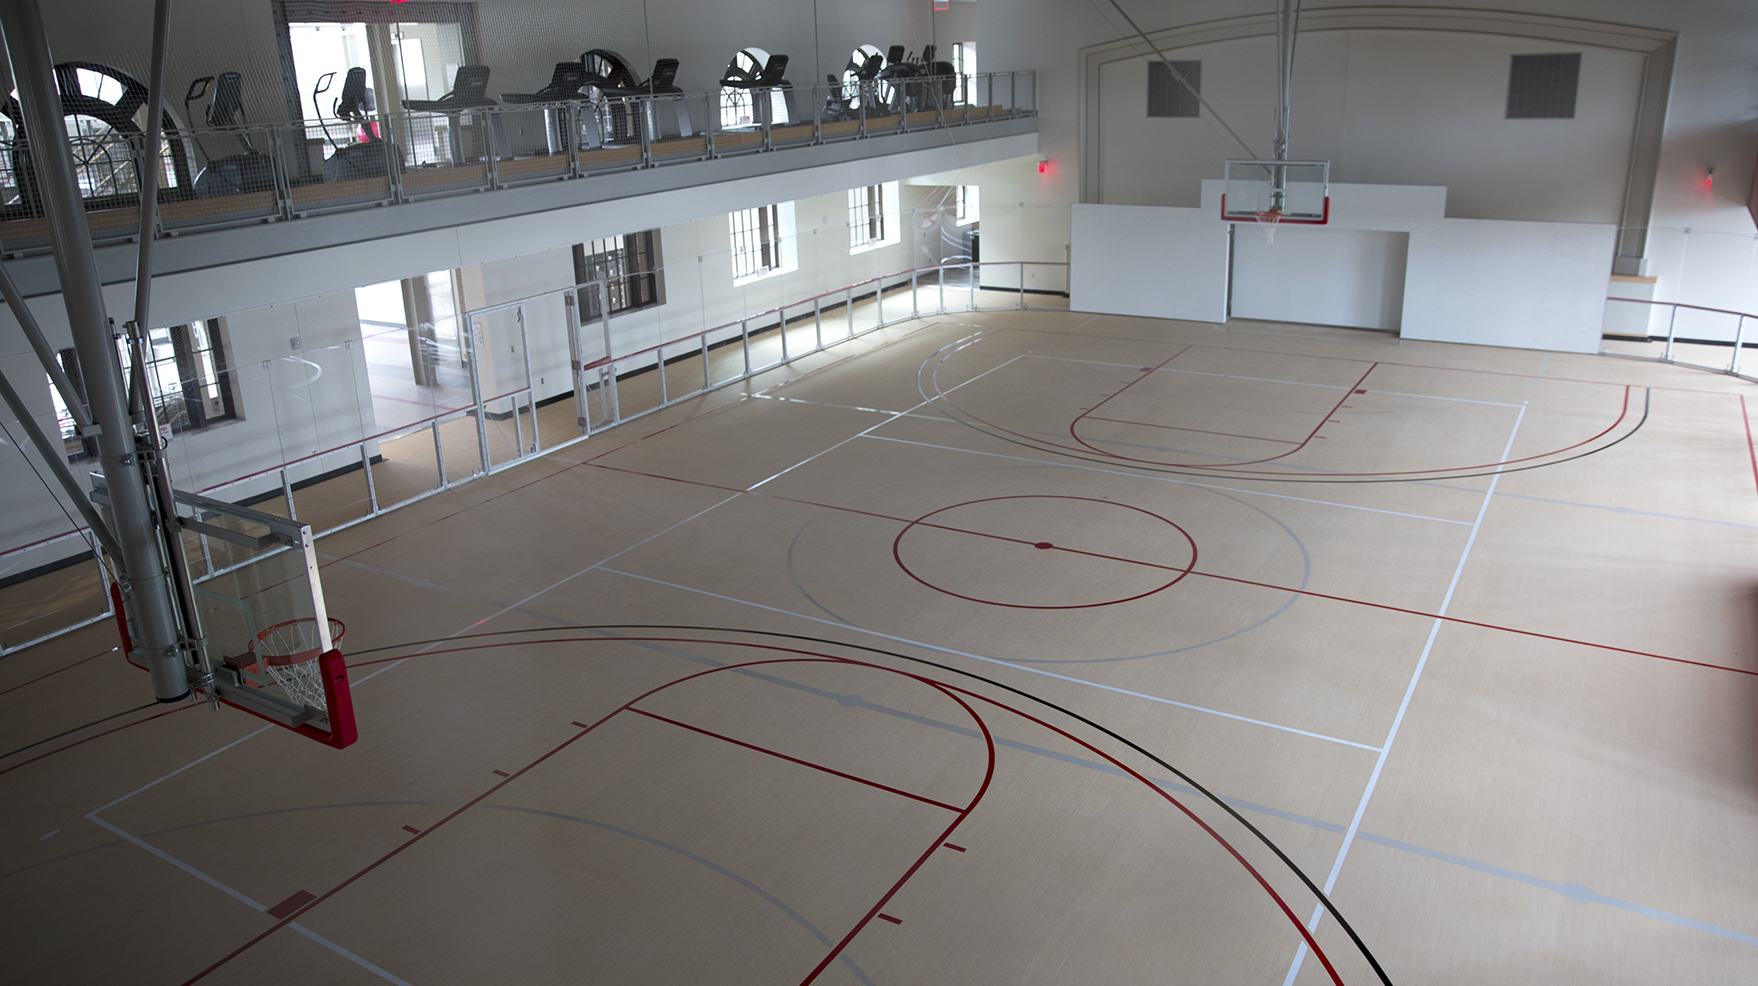 The Recreation And Wellness Center On Unl S East Campus Offers Two Indoor Courts This One Troy Fedderson University Communications